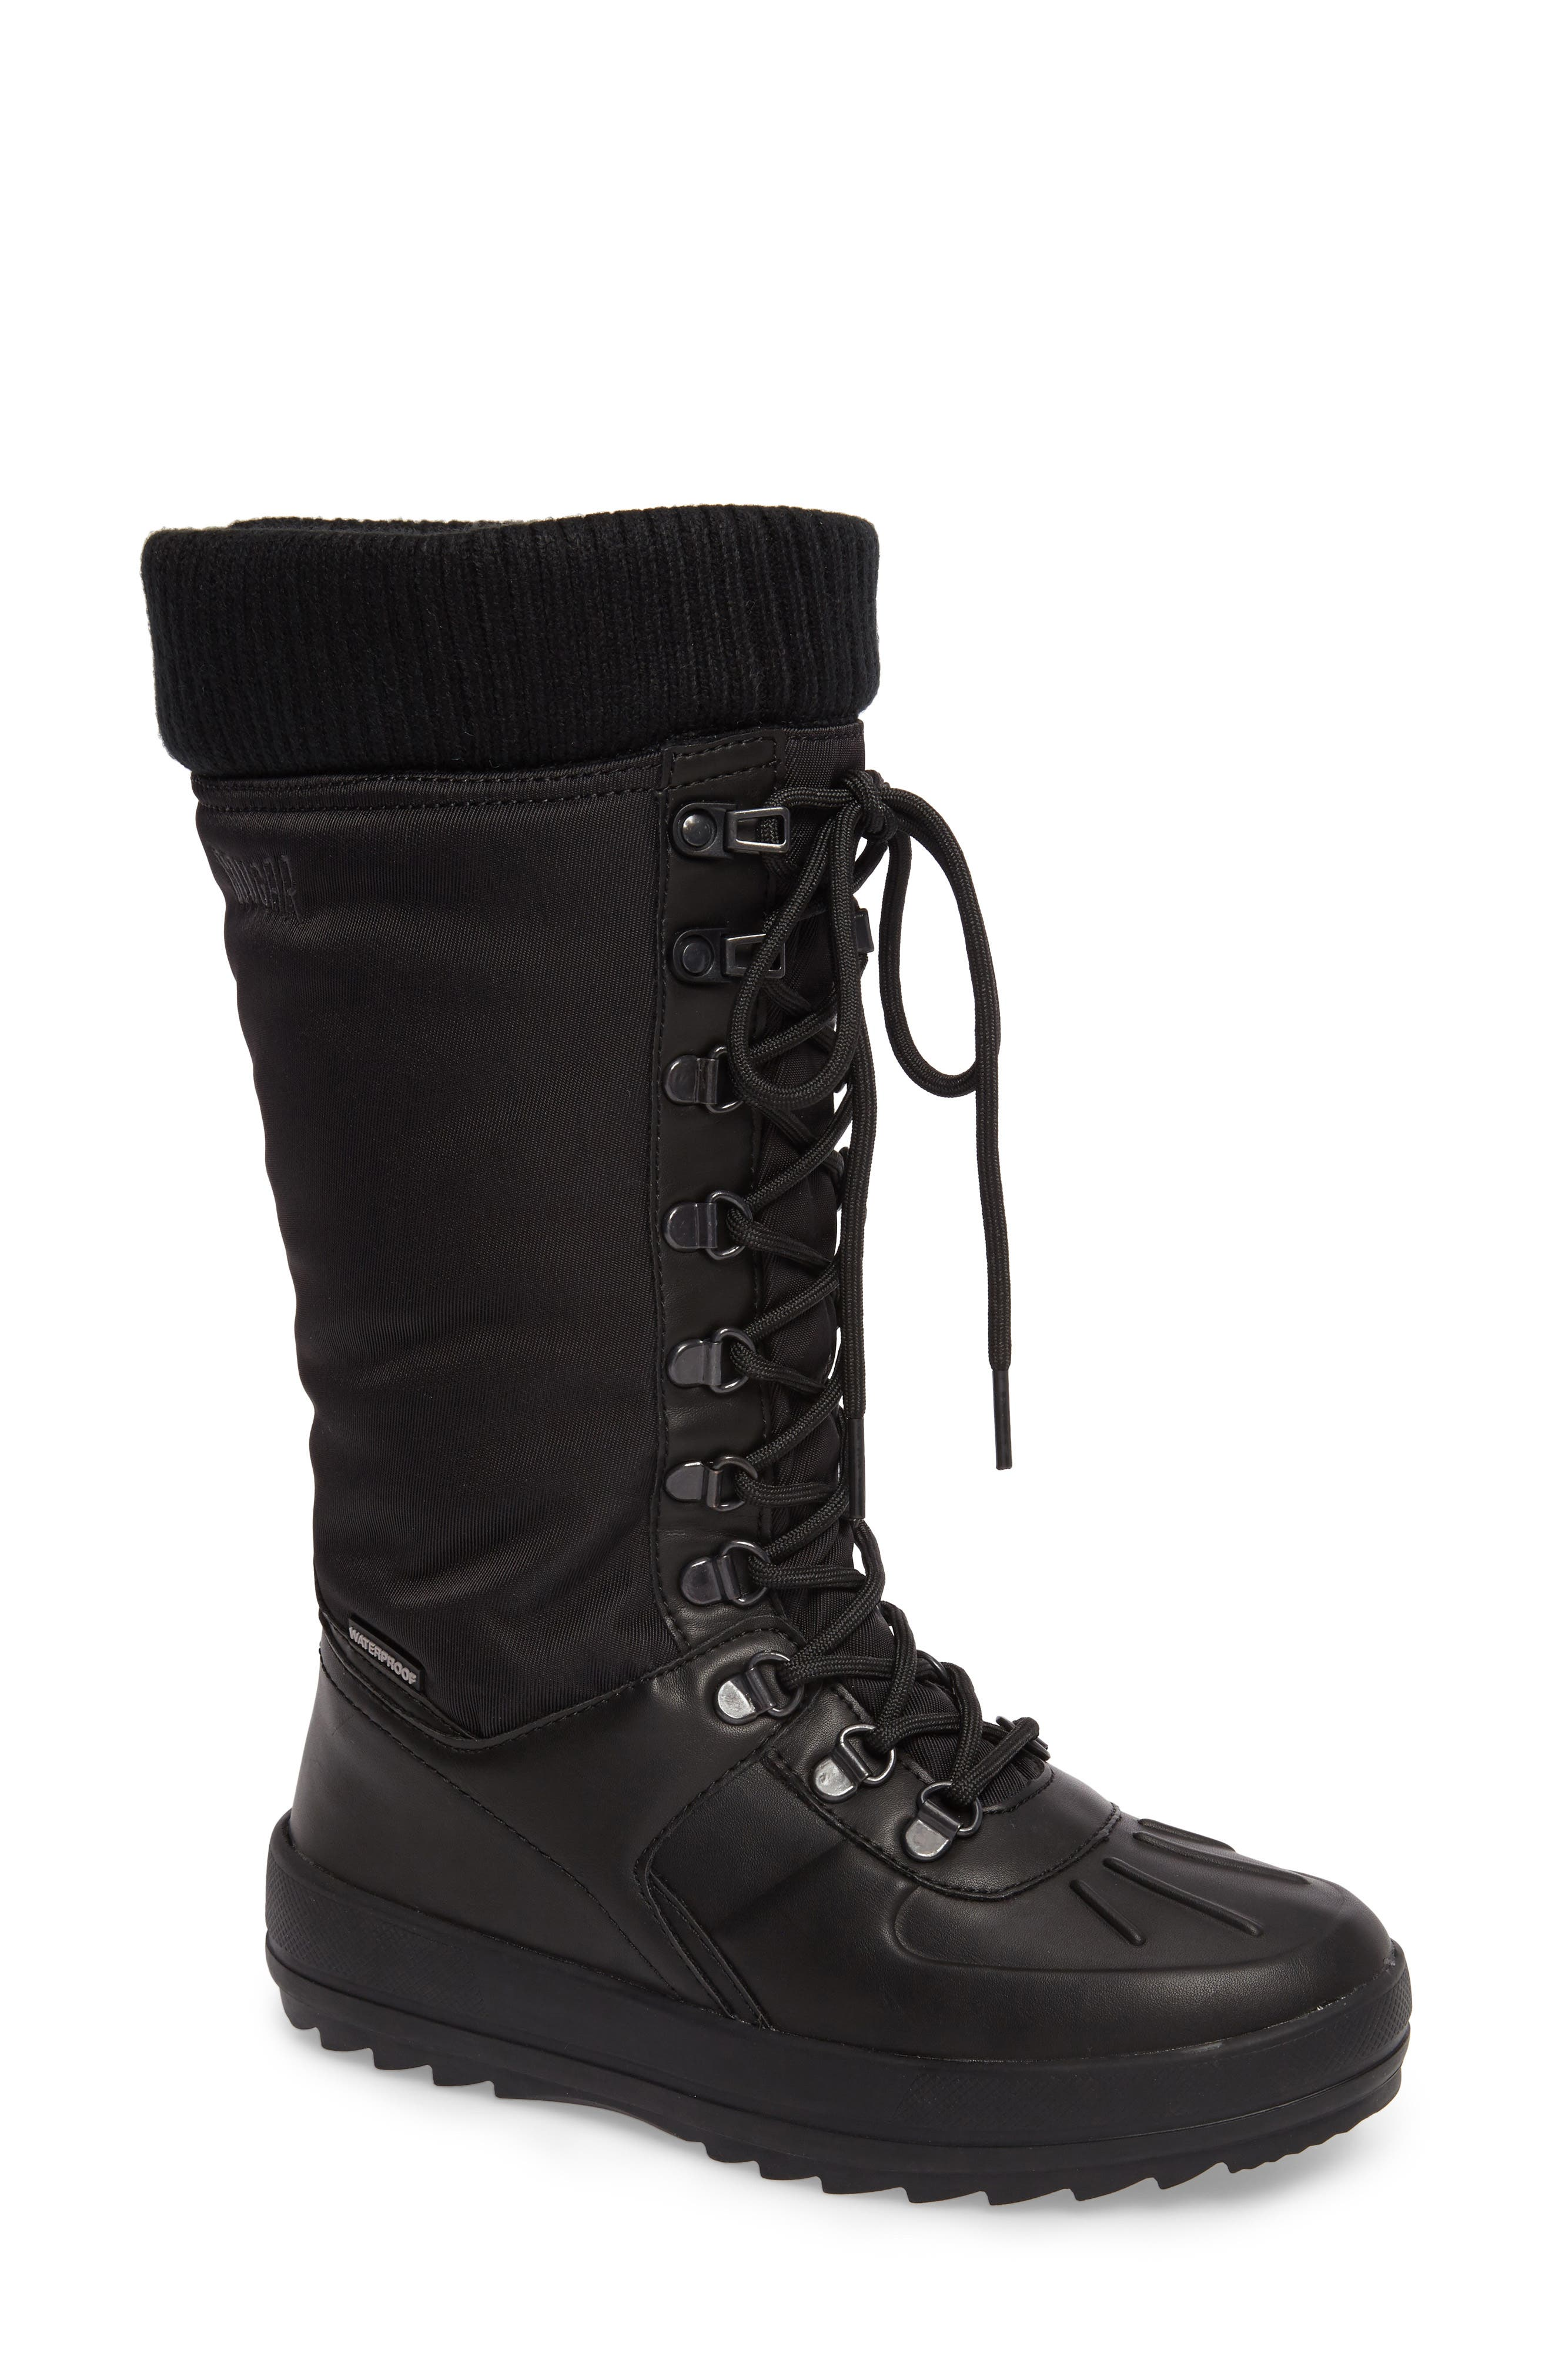 Vancouver Waterproof Winter Boot,                         Main,                         color, Black All Over